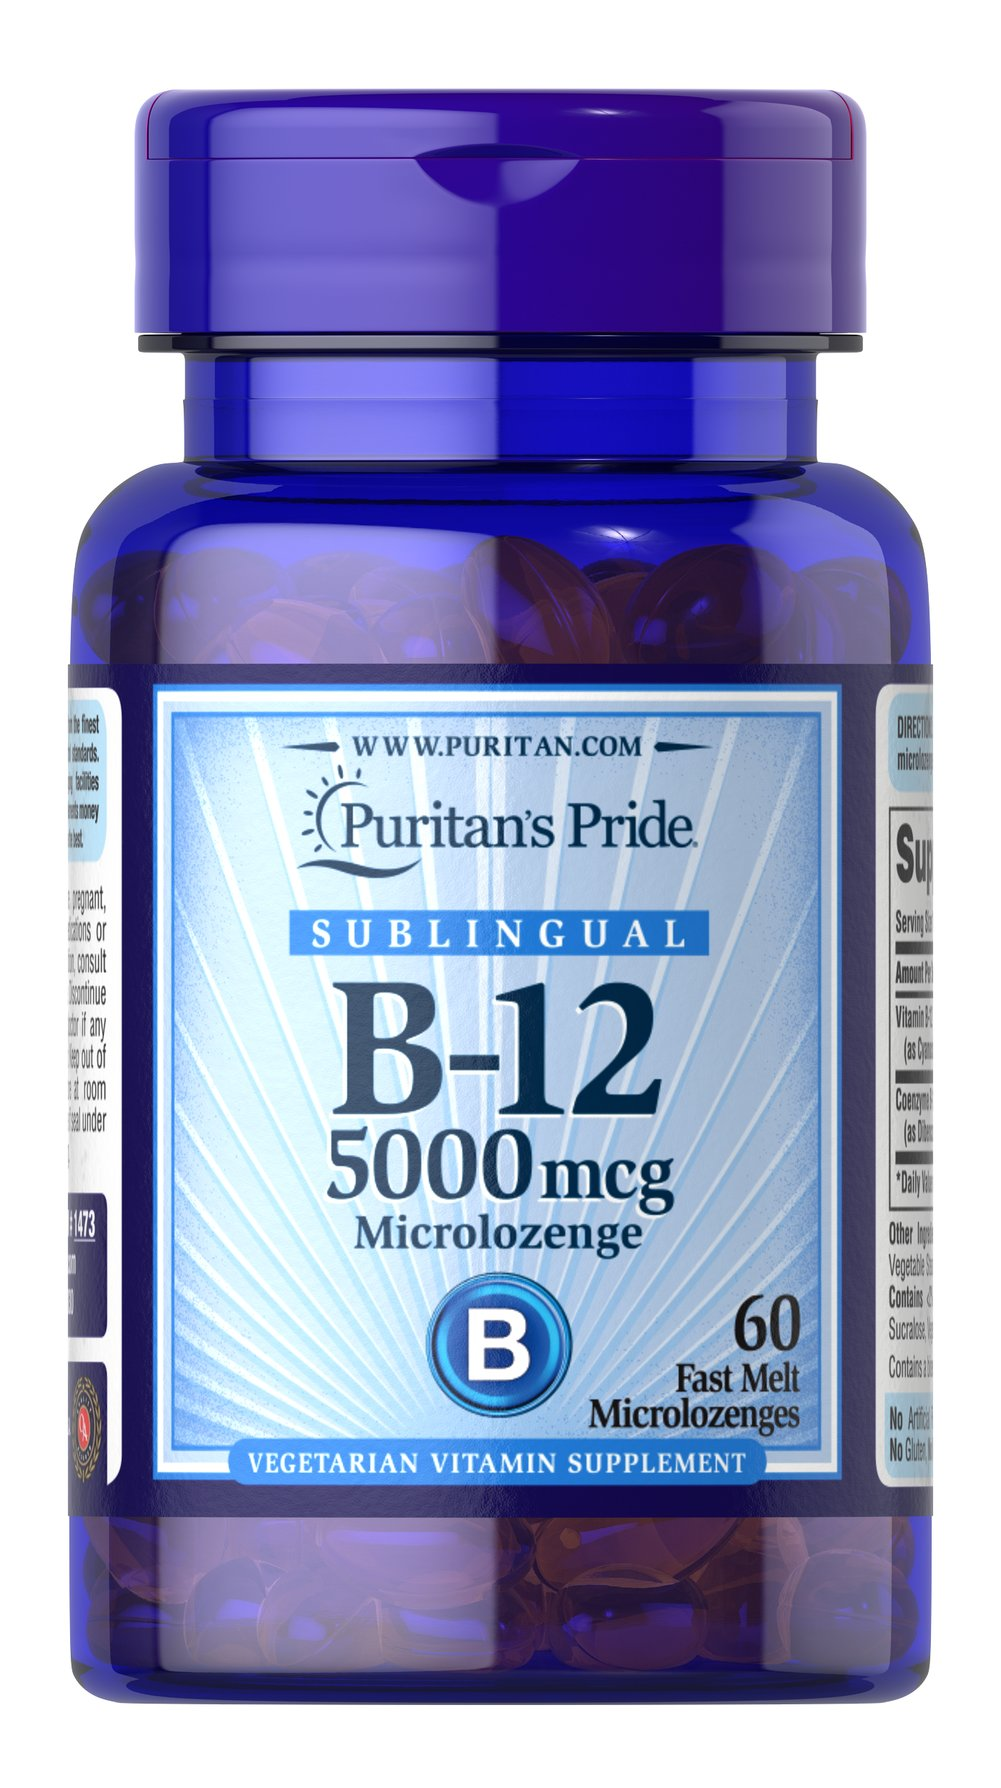 Vitamin B-12 5000 mcg Sublingual <p>Puritan's Pride's unique B-12  lozenges and dots deliver essential B vitamins for energy metabolism in the body.** Vitamin B-12 is also essential for the normal formation of blood cells, contributes to the health of the nervous system, and helps maintain circulatory health.** Adults can take one lozenge or dot daily with a meal. Place lozenge or dot under tongue for 30 seconds before swallowing.</p> 60 Microlozenges 5000 mcg $19.99